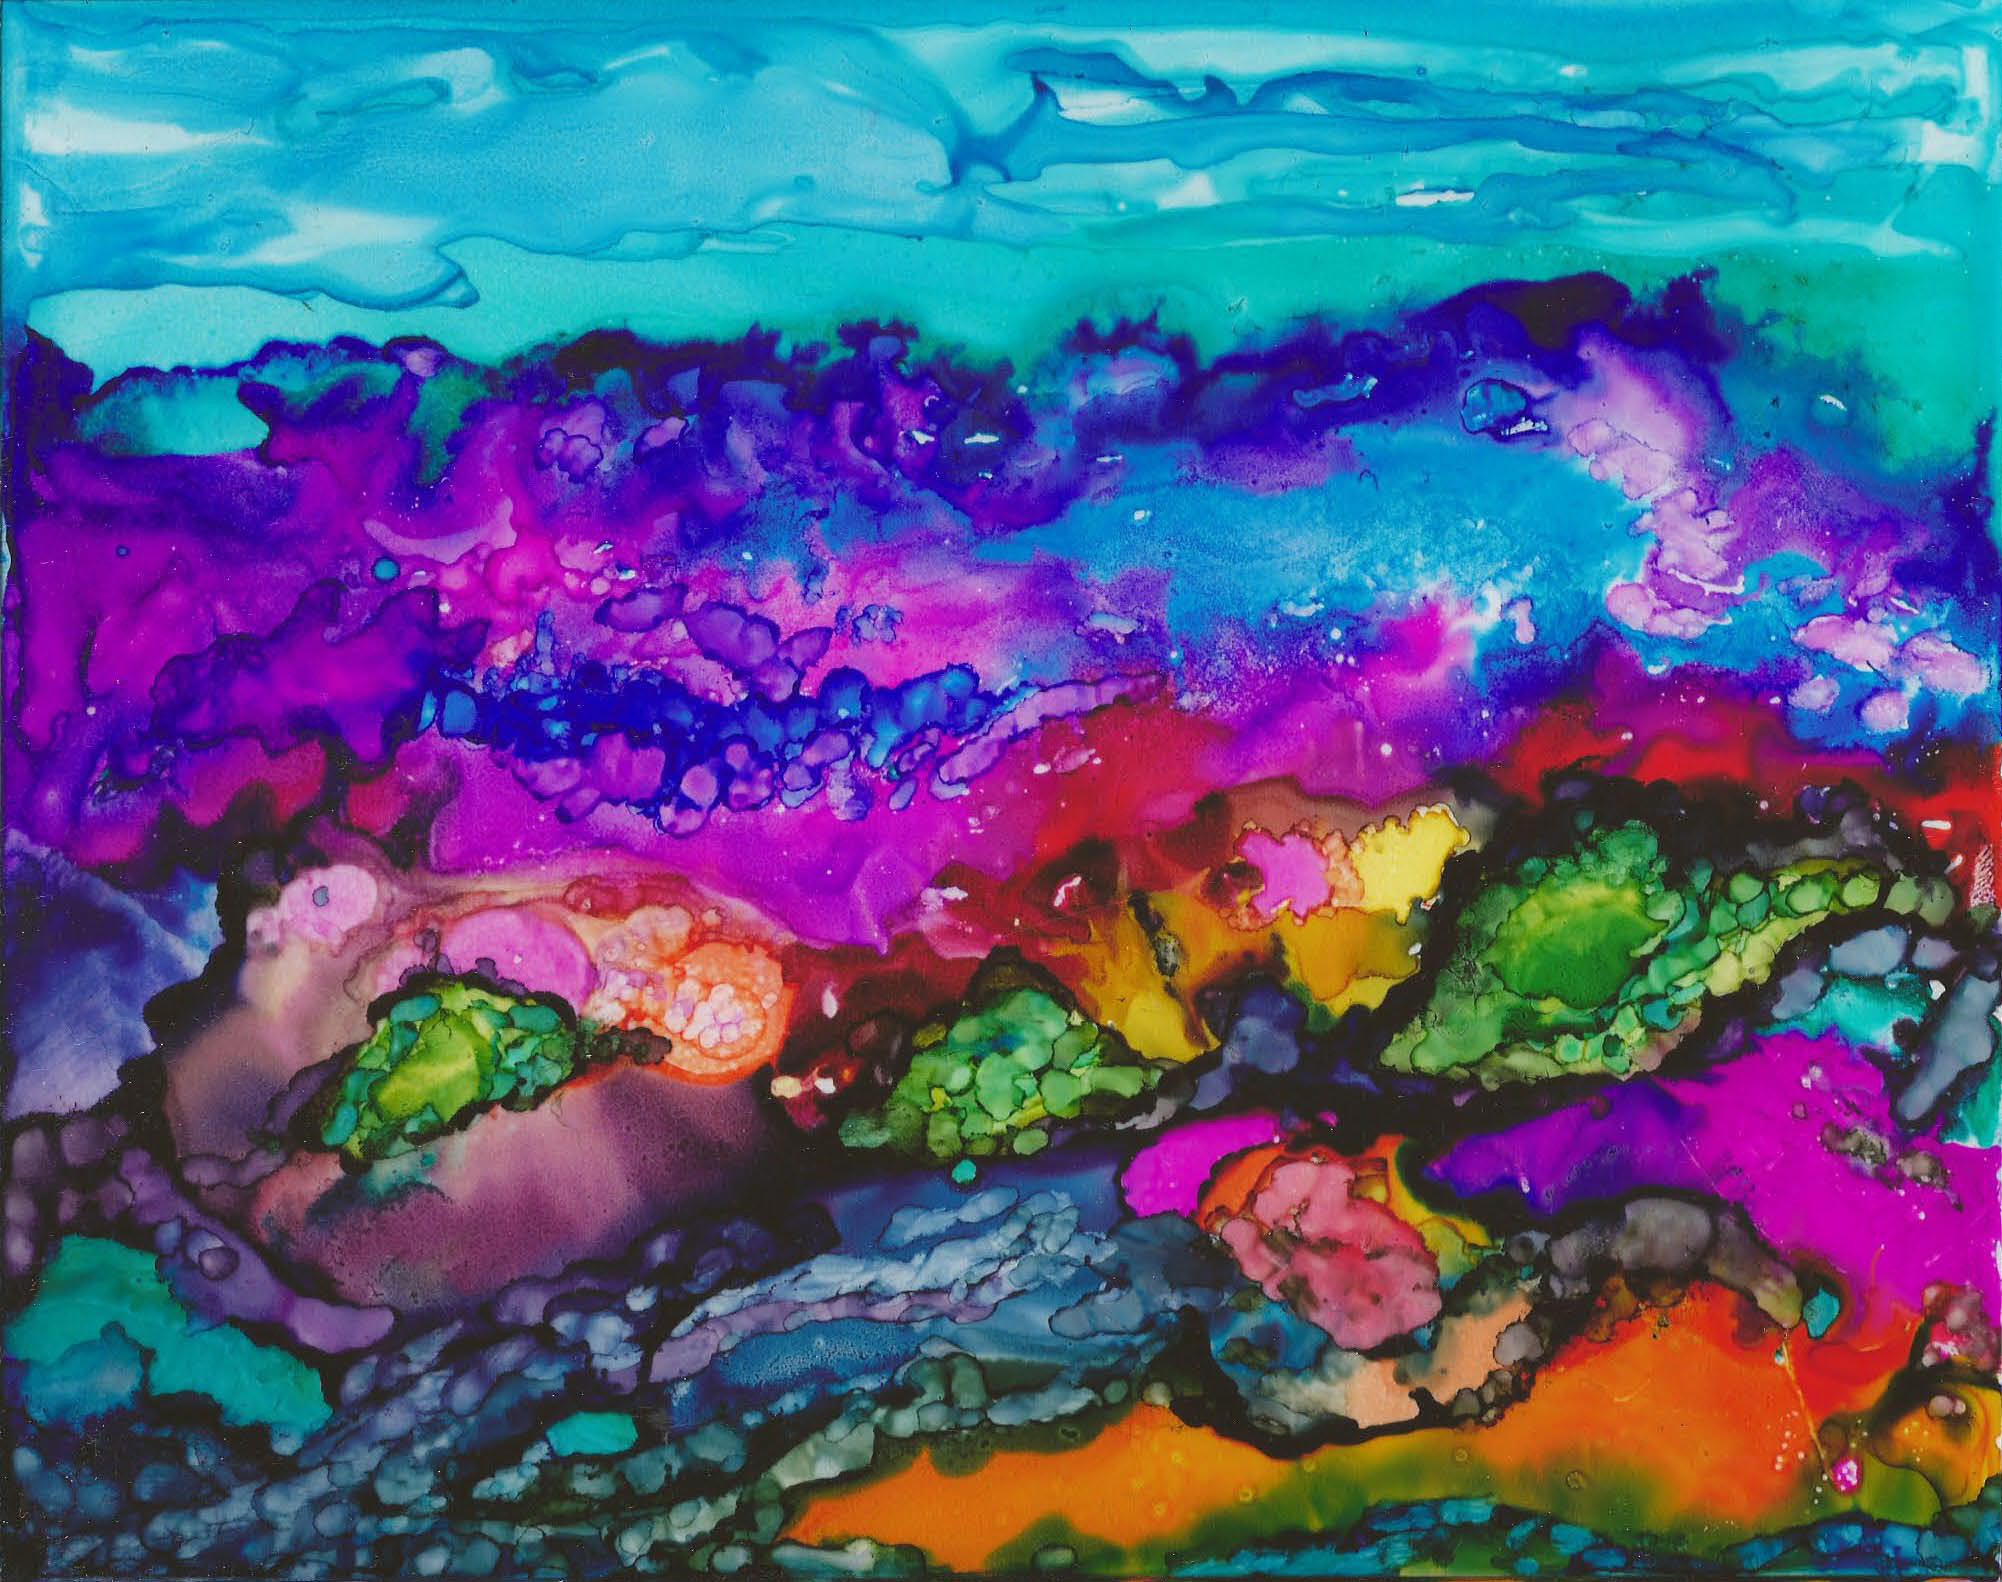 Colorful Landscape - Alcohol Ink on Glass 8 X 10 - Sold